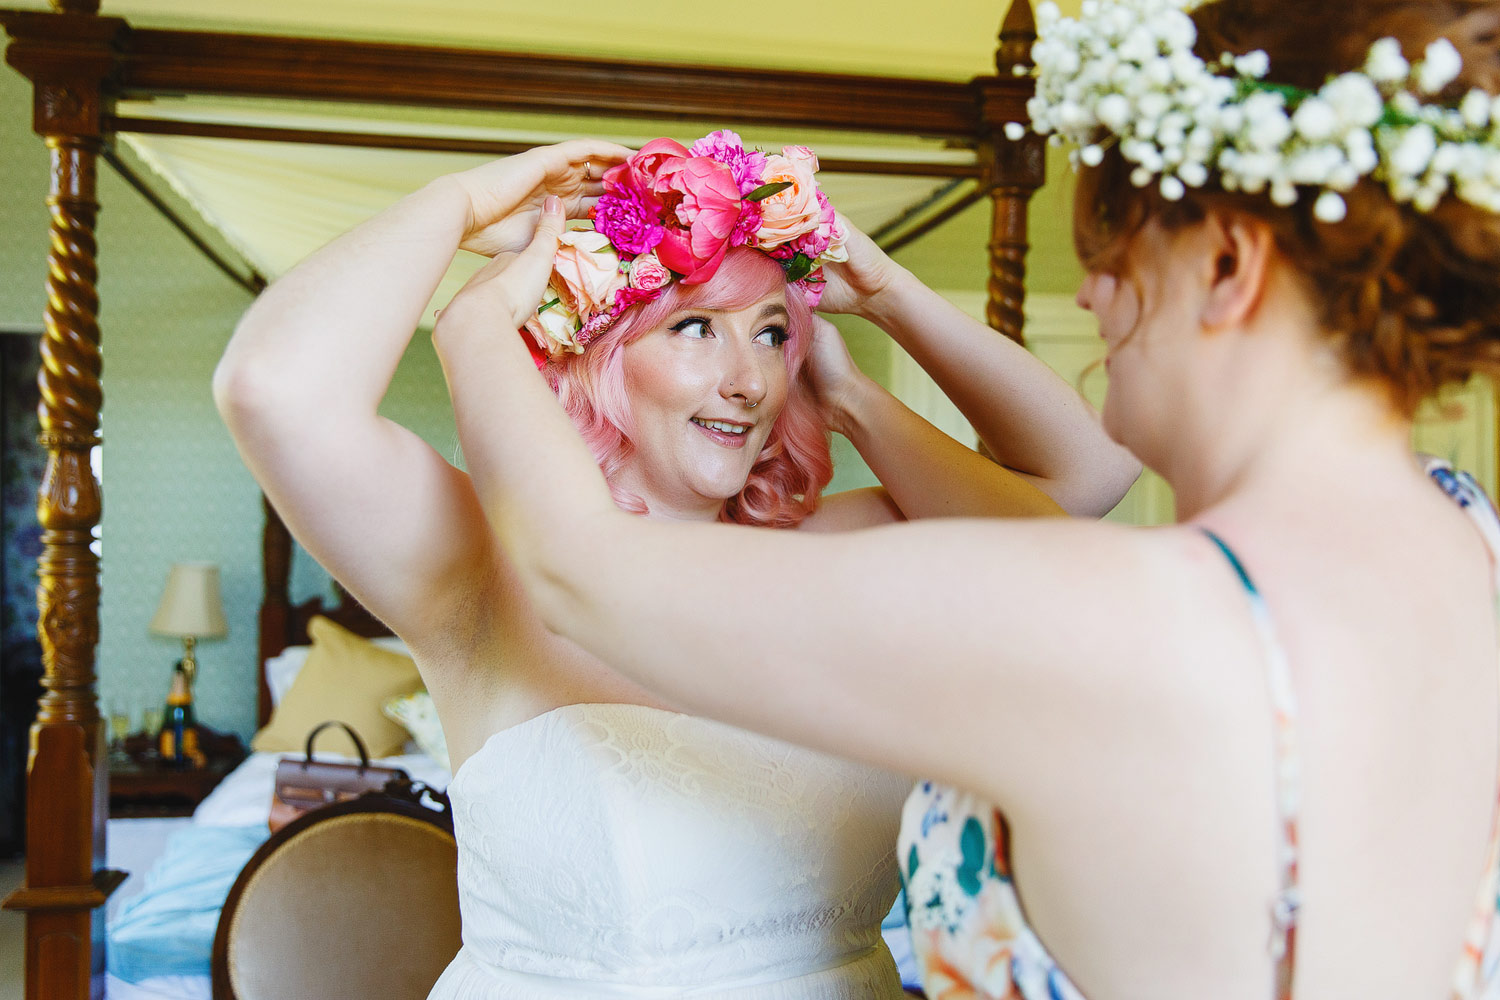 A bride puts on her floral crown at her wedding at Bressingham hall